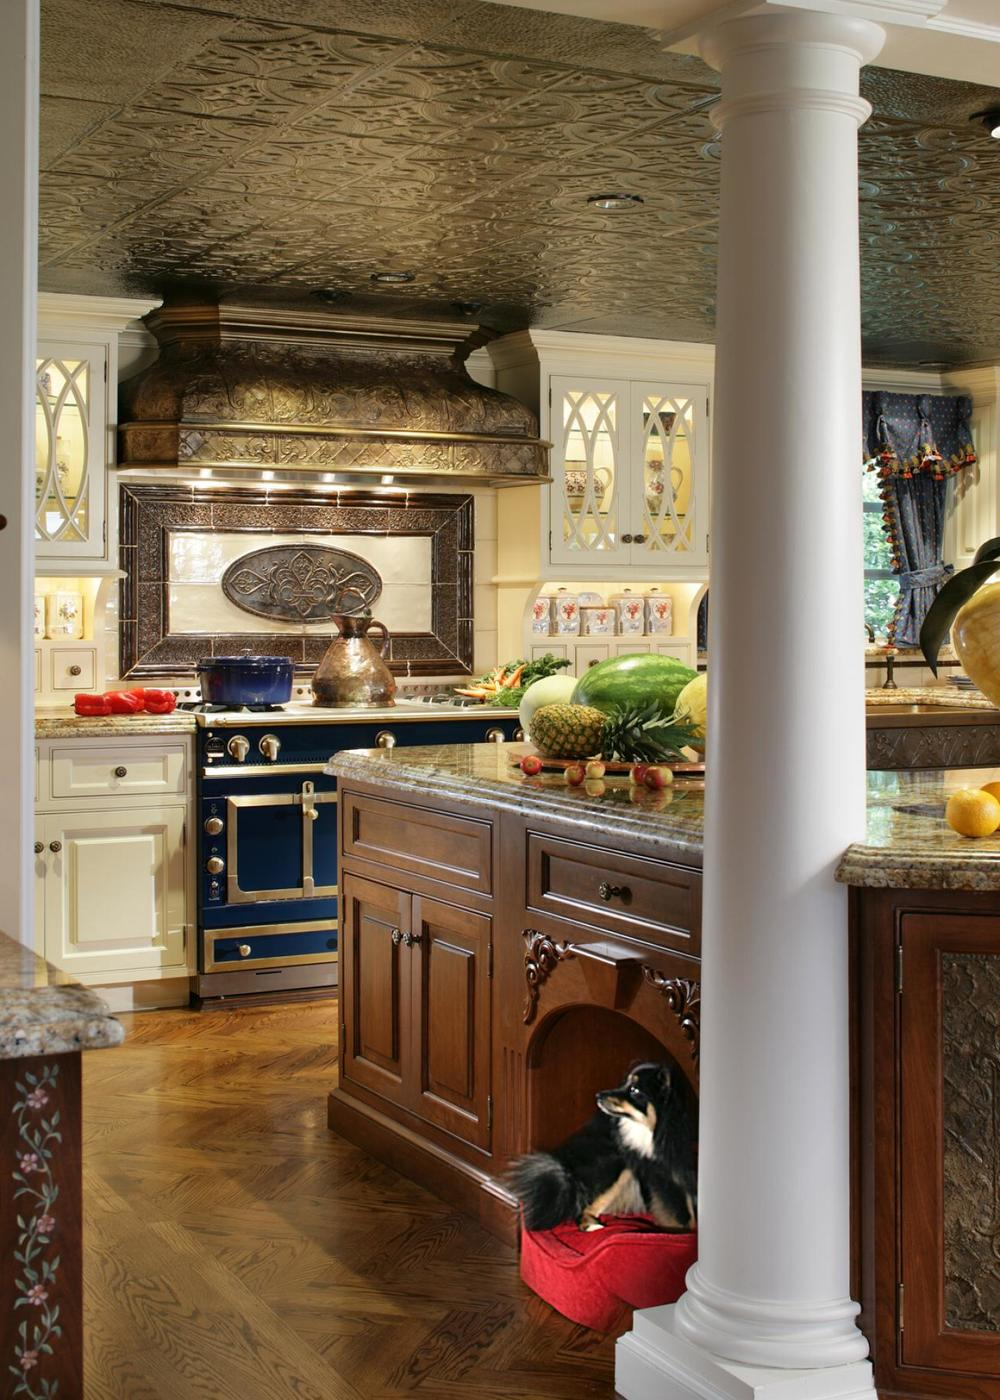 NKBA_Kitchen2015-Pet_Peter-Salerno_2.jpg.rend.hgtvcom.1280.1792.jpeg